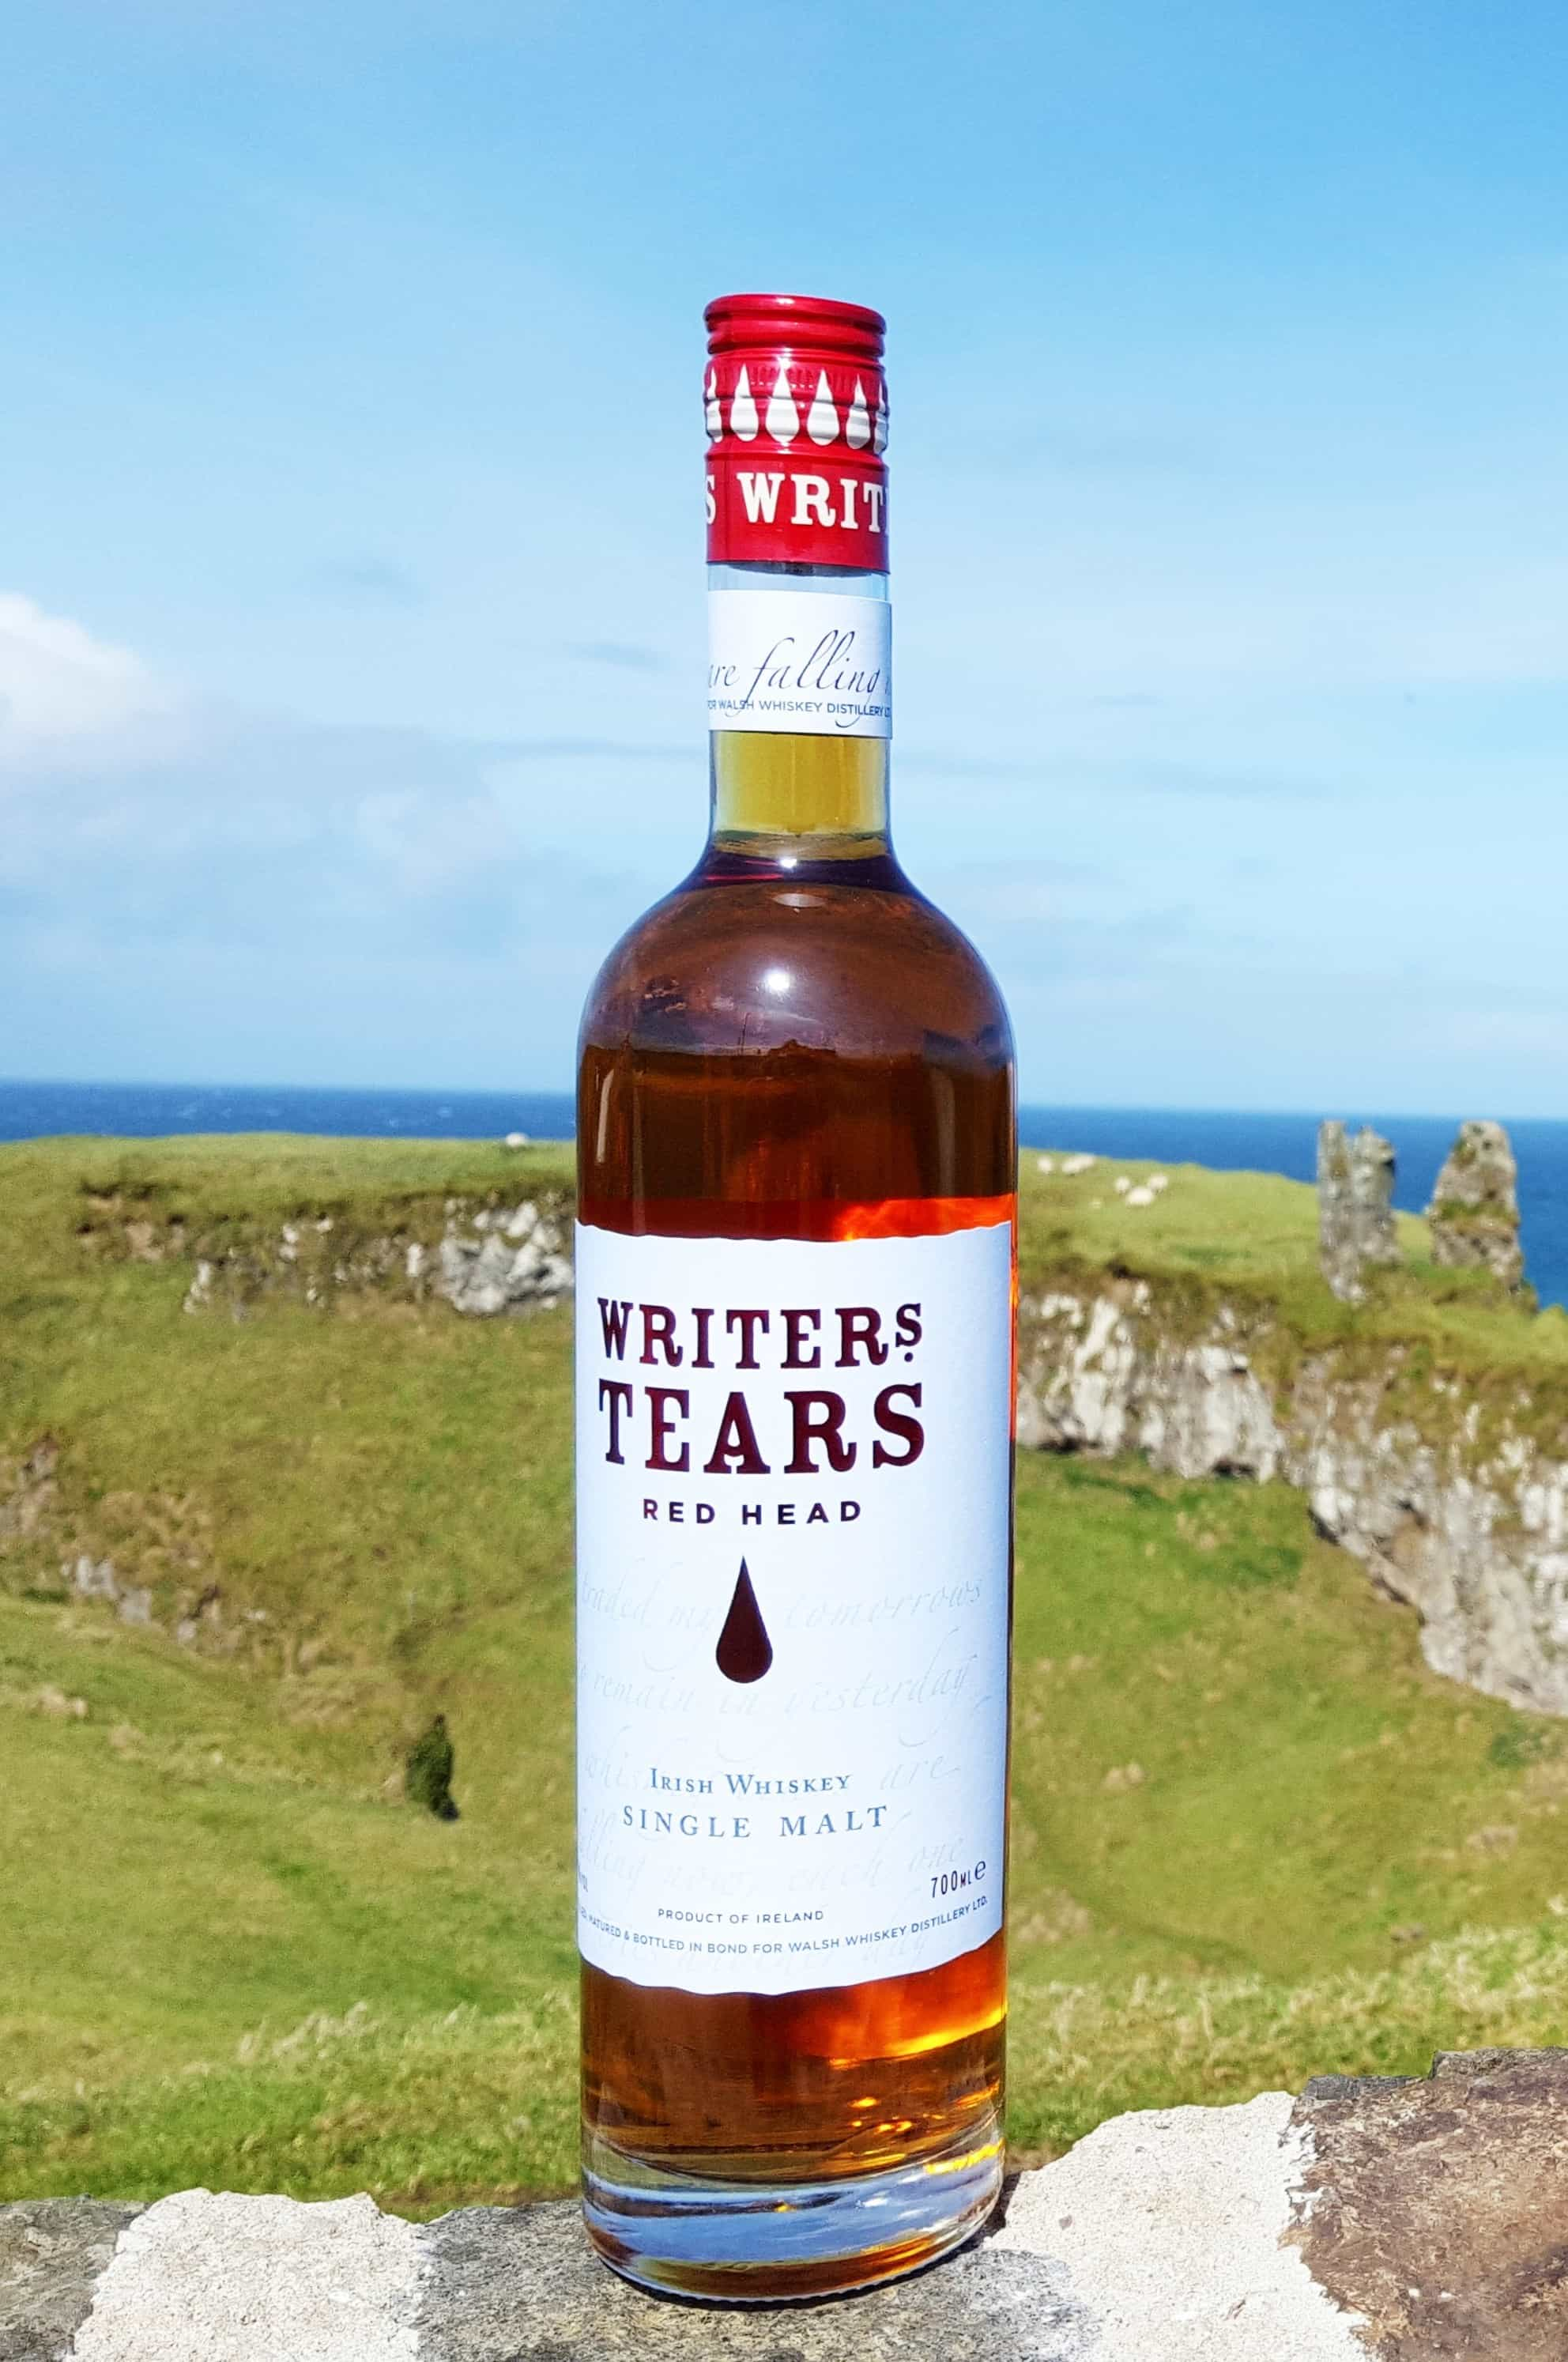 Writers' Tears Red Head